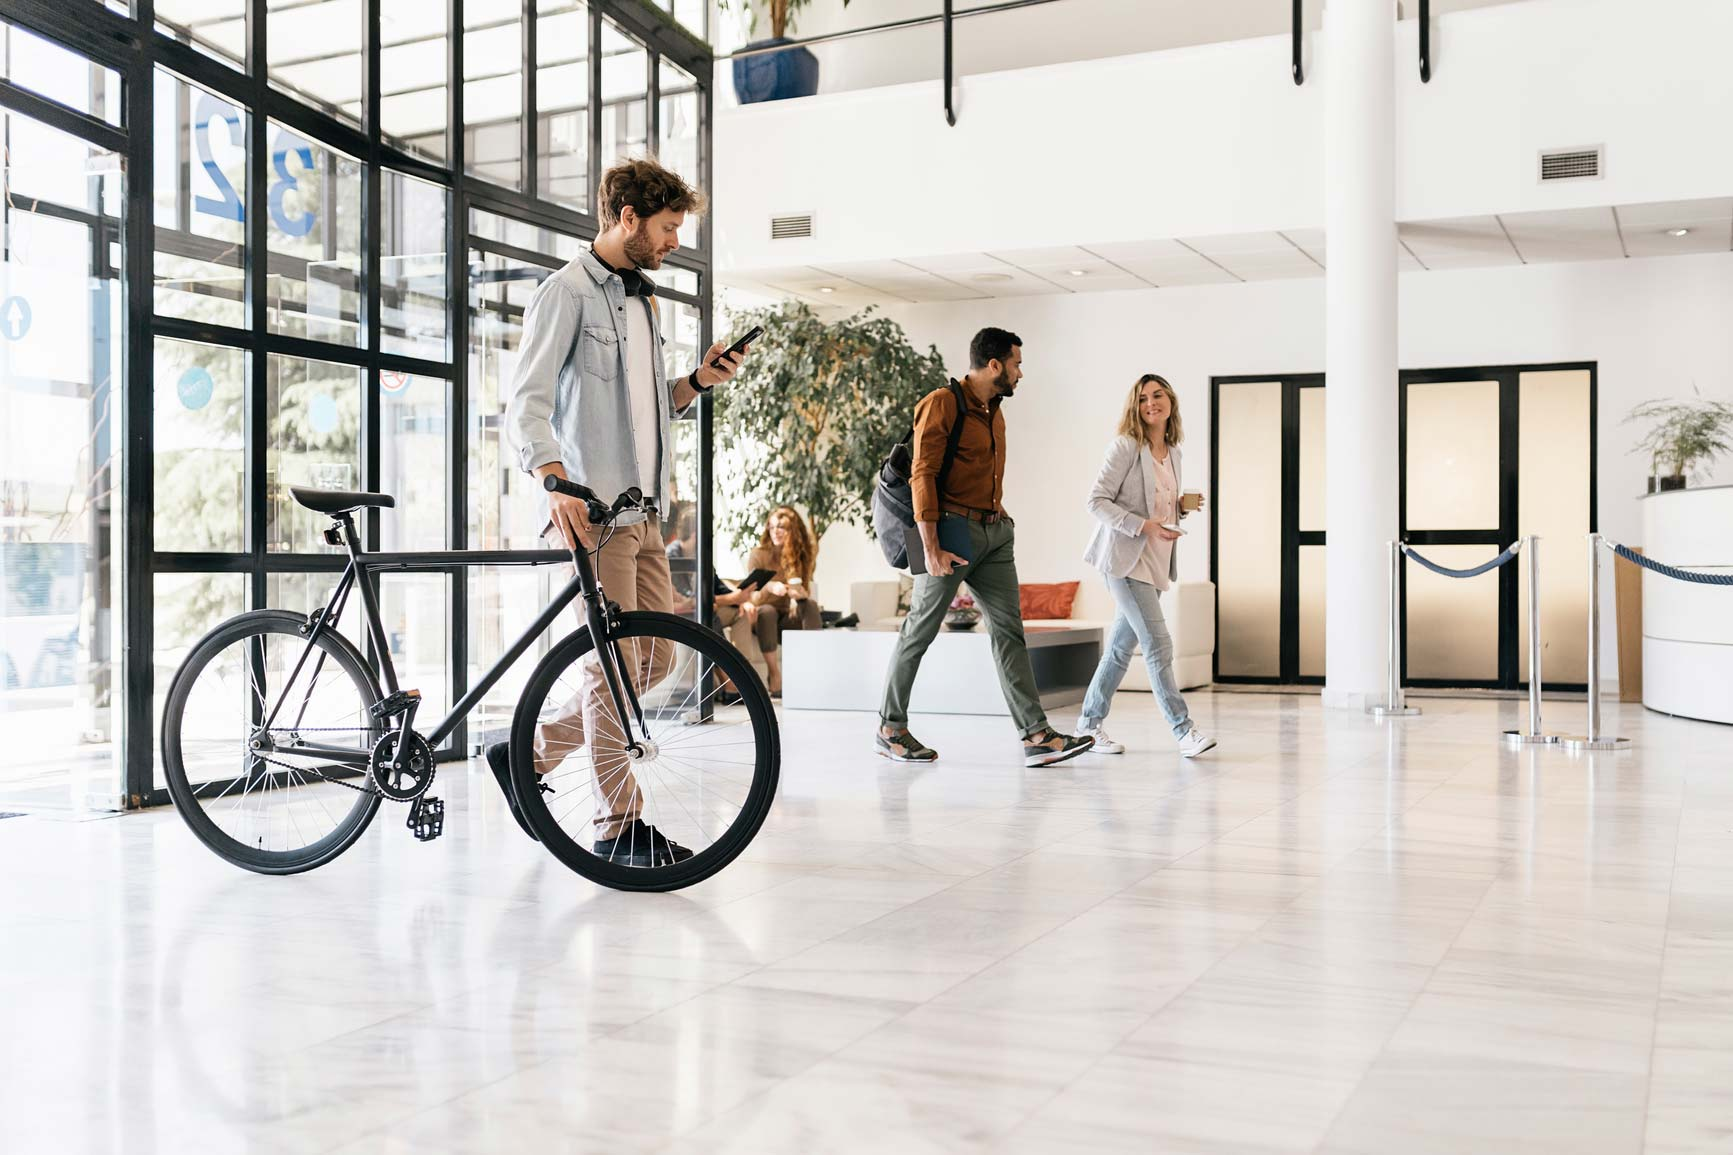 3 ways to create an attractive workplace for your employees